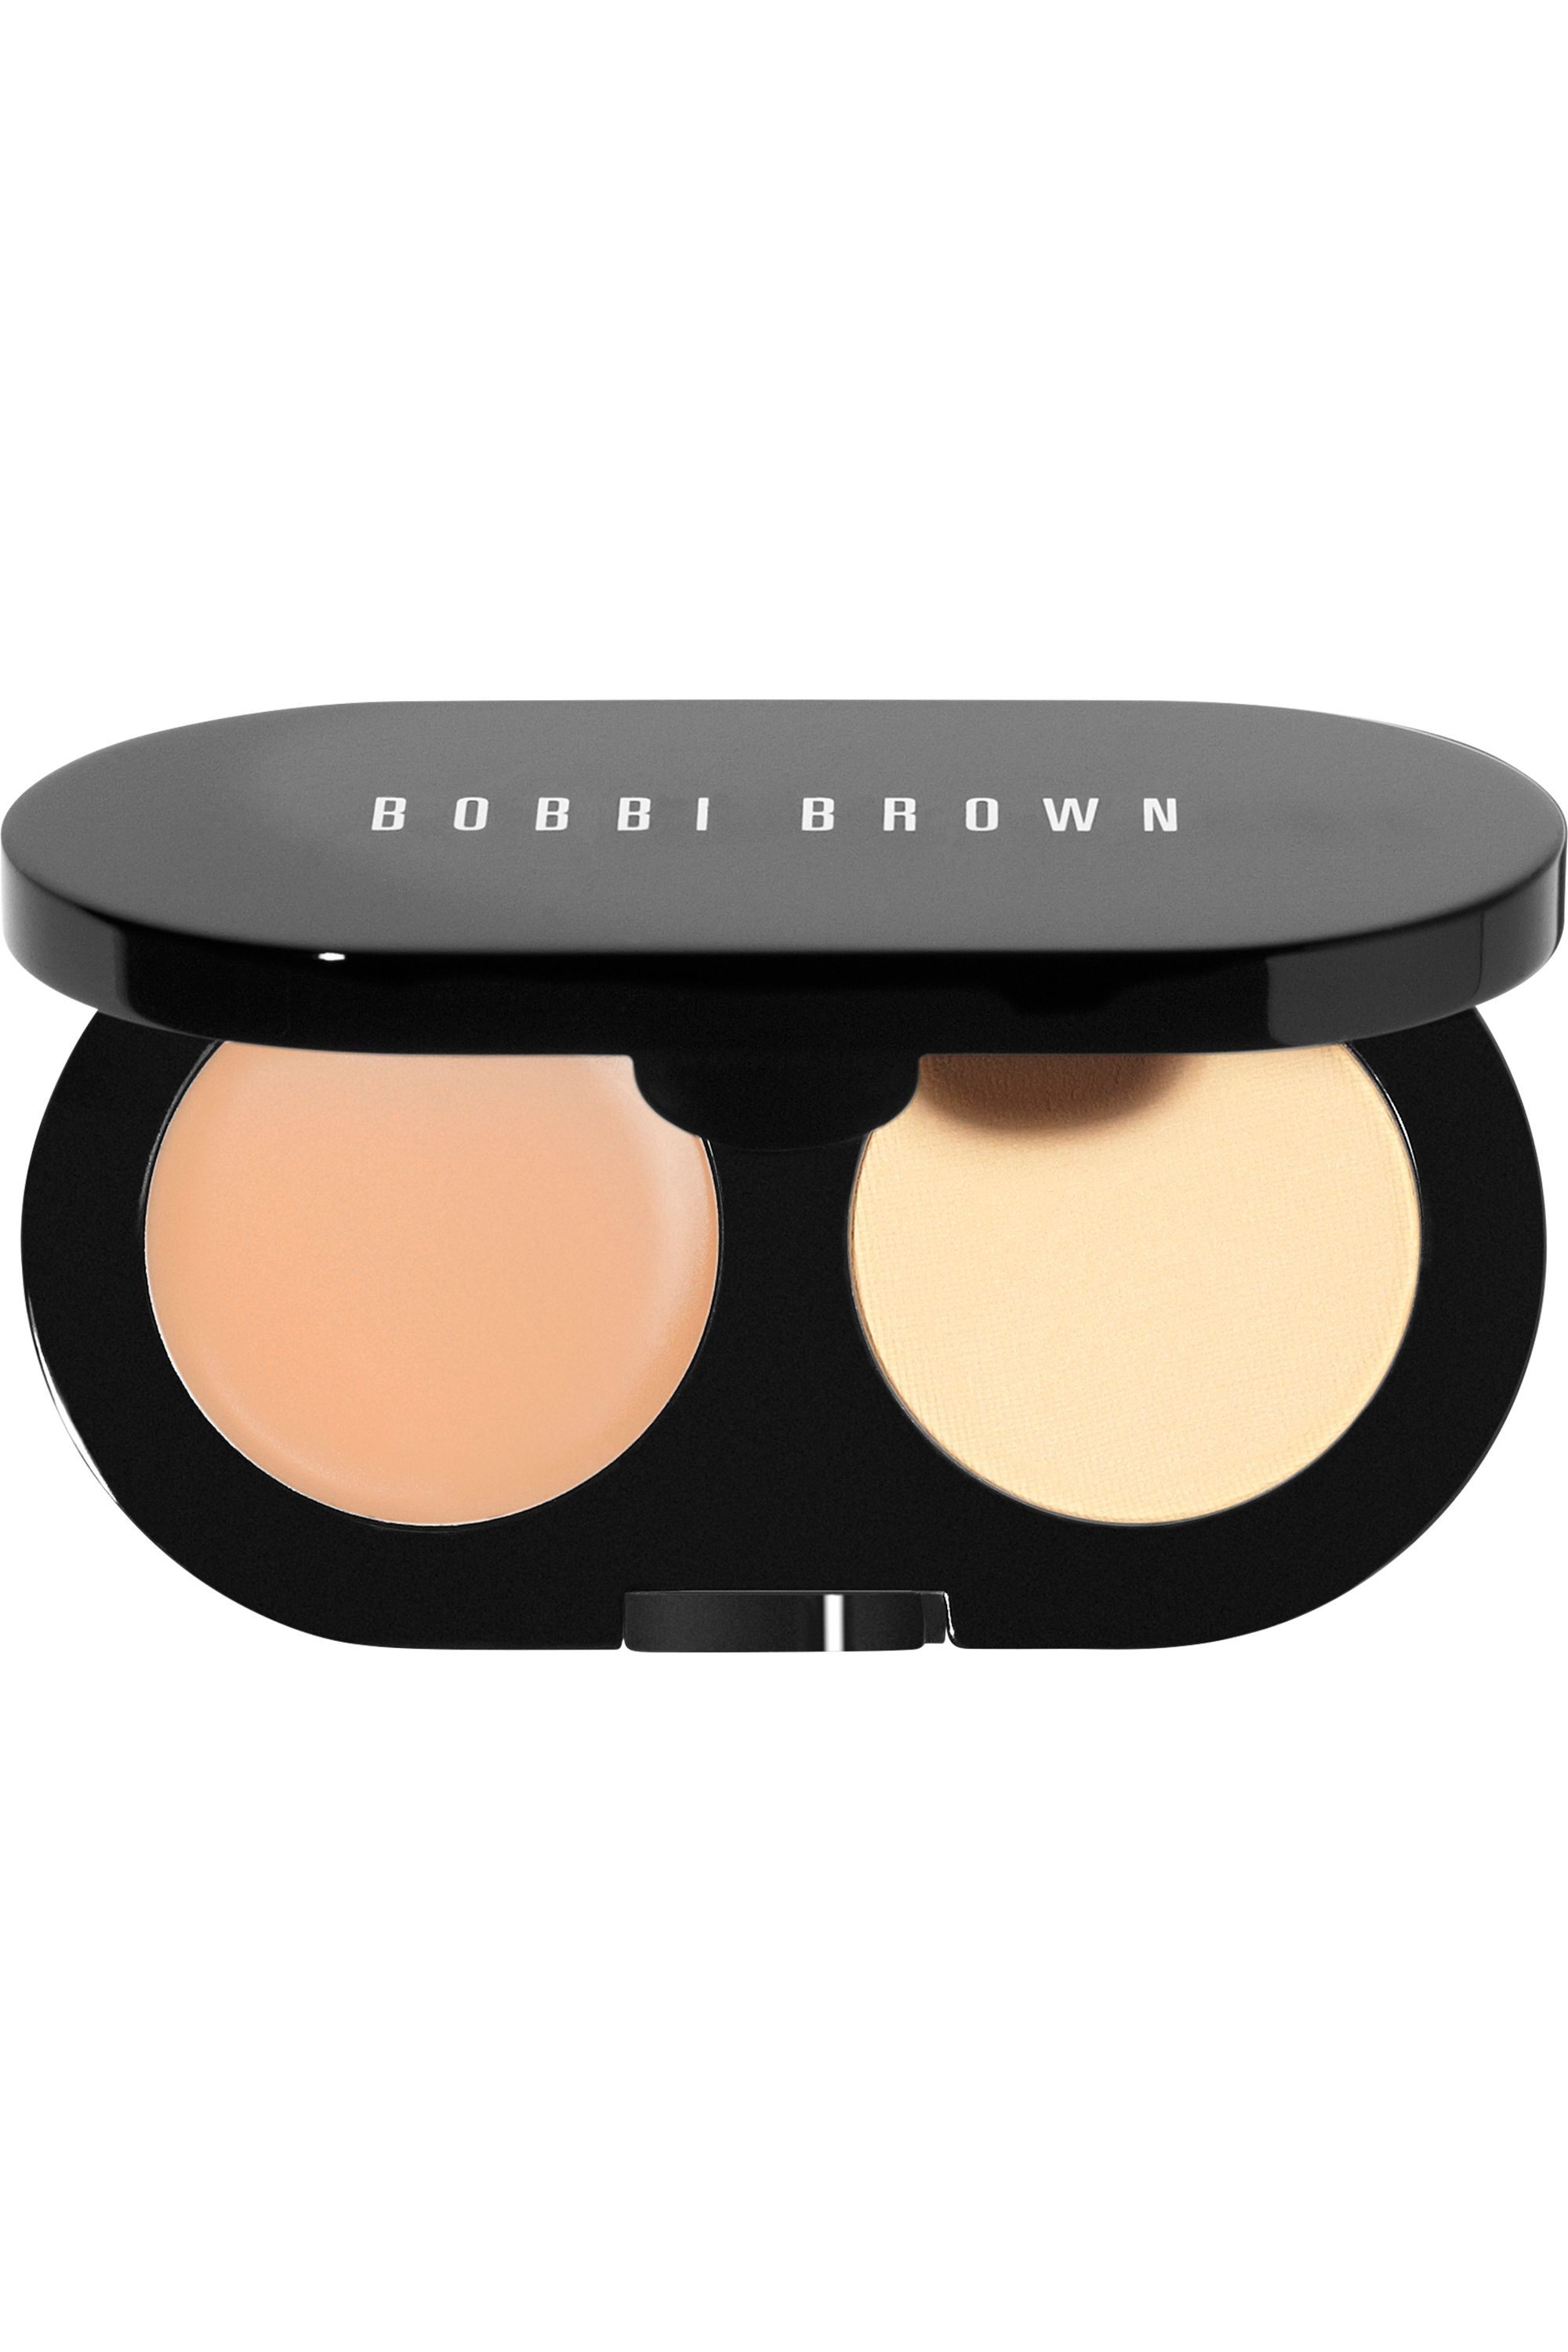 Blissim : Bobbi Brown - Kit anti-cernes Creamy Concealer Kit - Sand